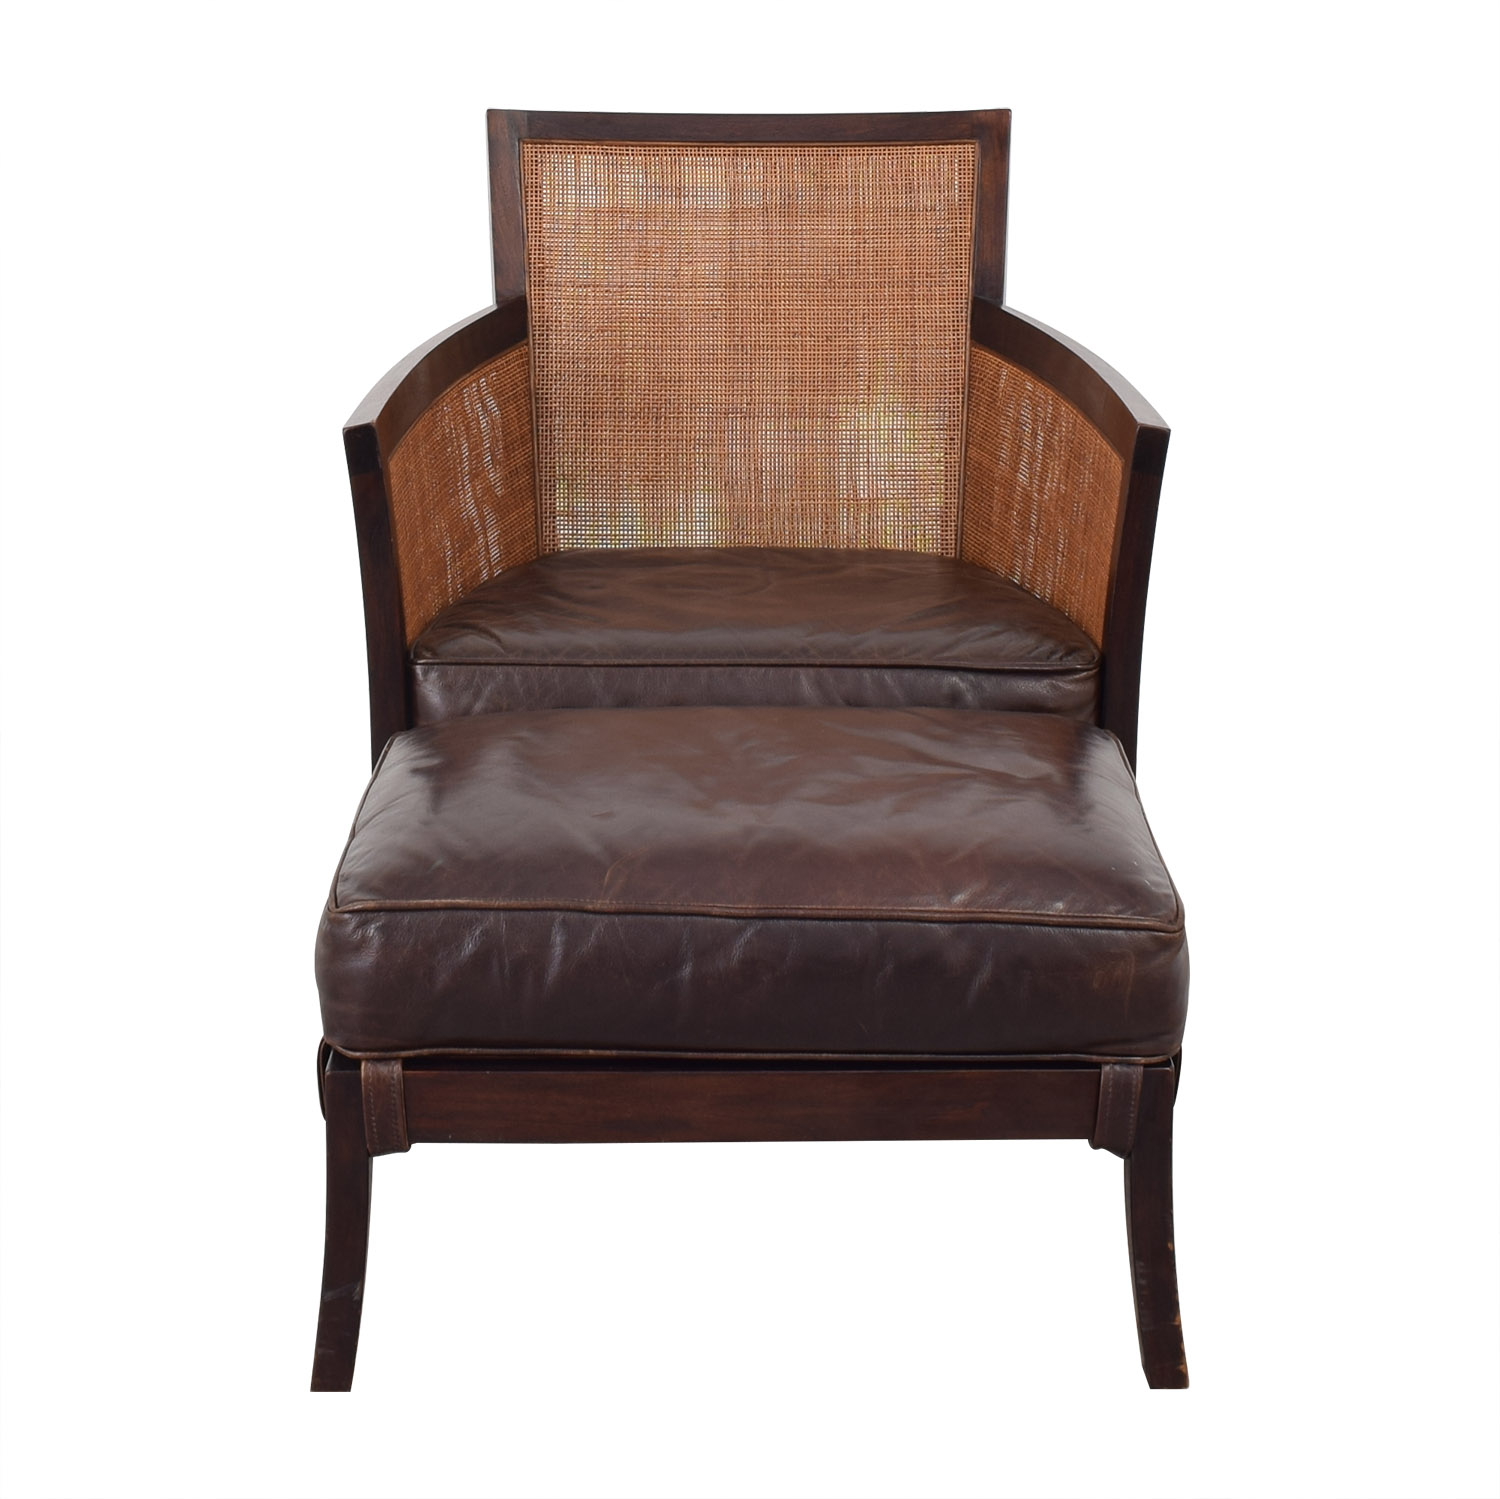 Peachy 60 Off Crate Barrel Crate Barrel Blake Lounge Chair Ottoman Chairs Gmtry Best Dining Table And Chair Ideas Images Gmtryco